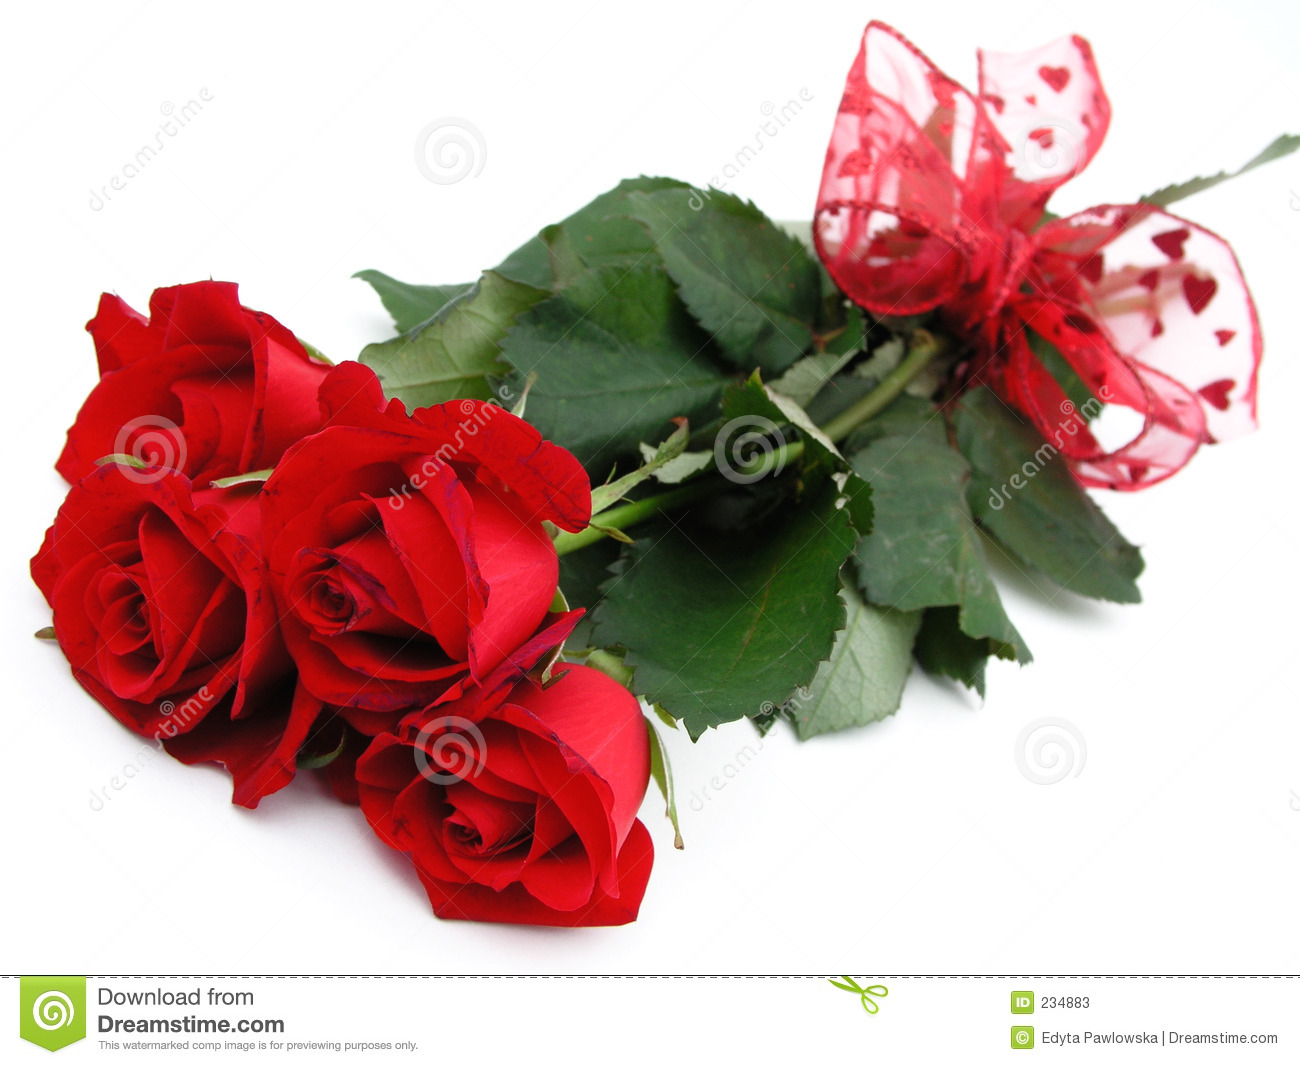 bunch-red-roses-234883